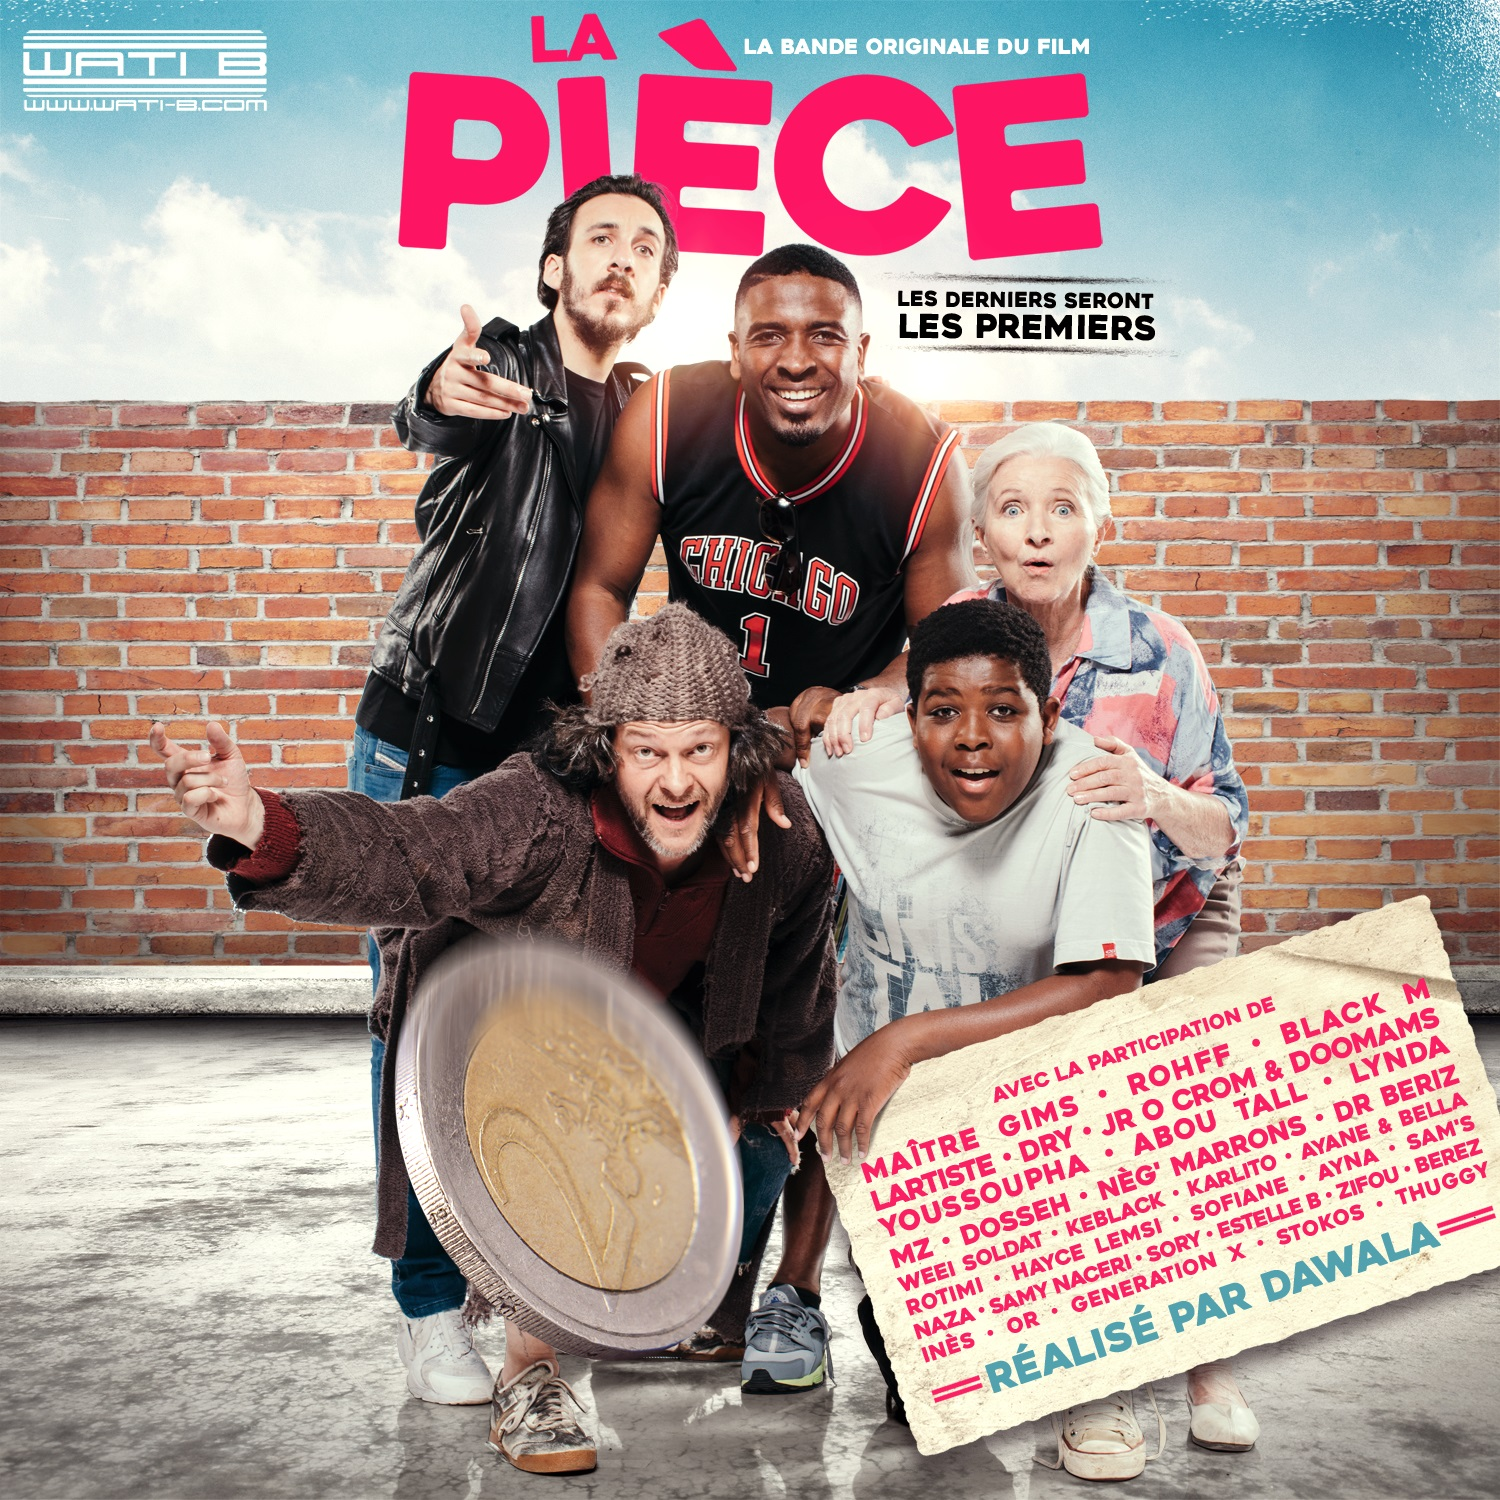 la-piece-cover-bande-originale-bd-justmusic-fr